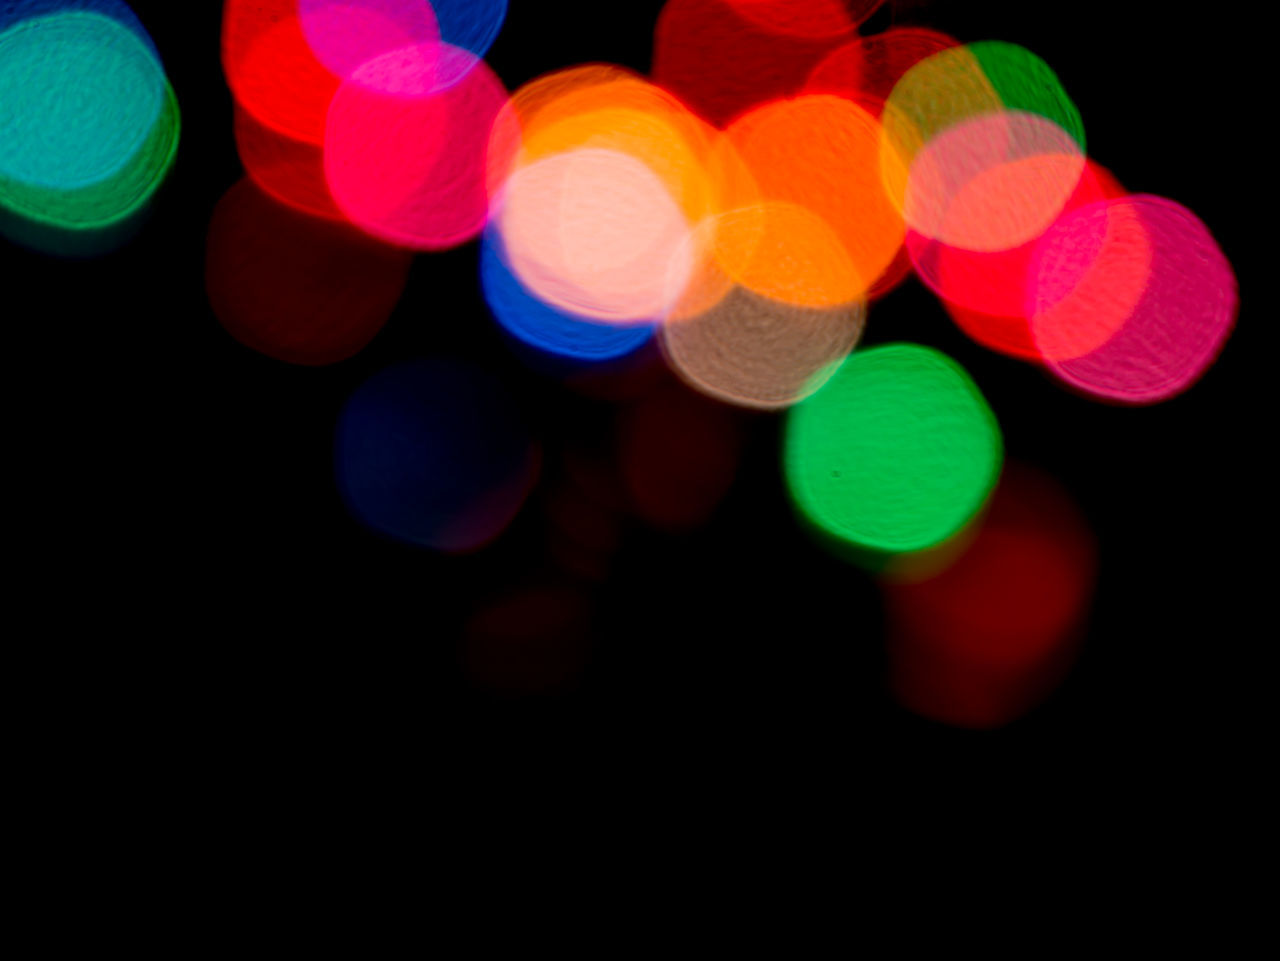 illuminated, multi colored, light effect, colorful, defocused, lighting equipment, no people, night, glowing, black background, studio shot, close-up, projection equipment, outdoors